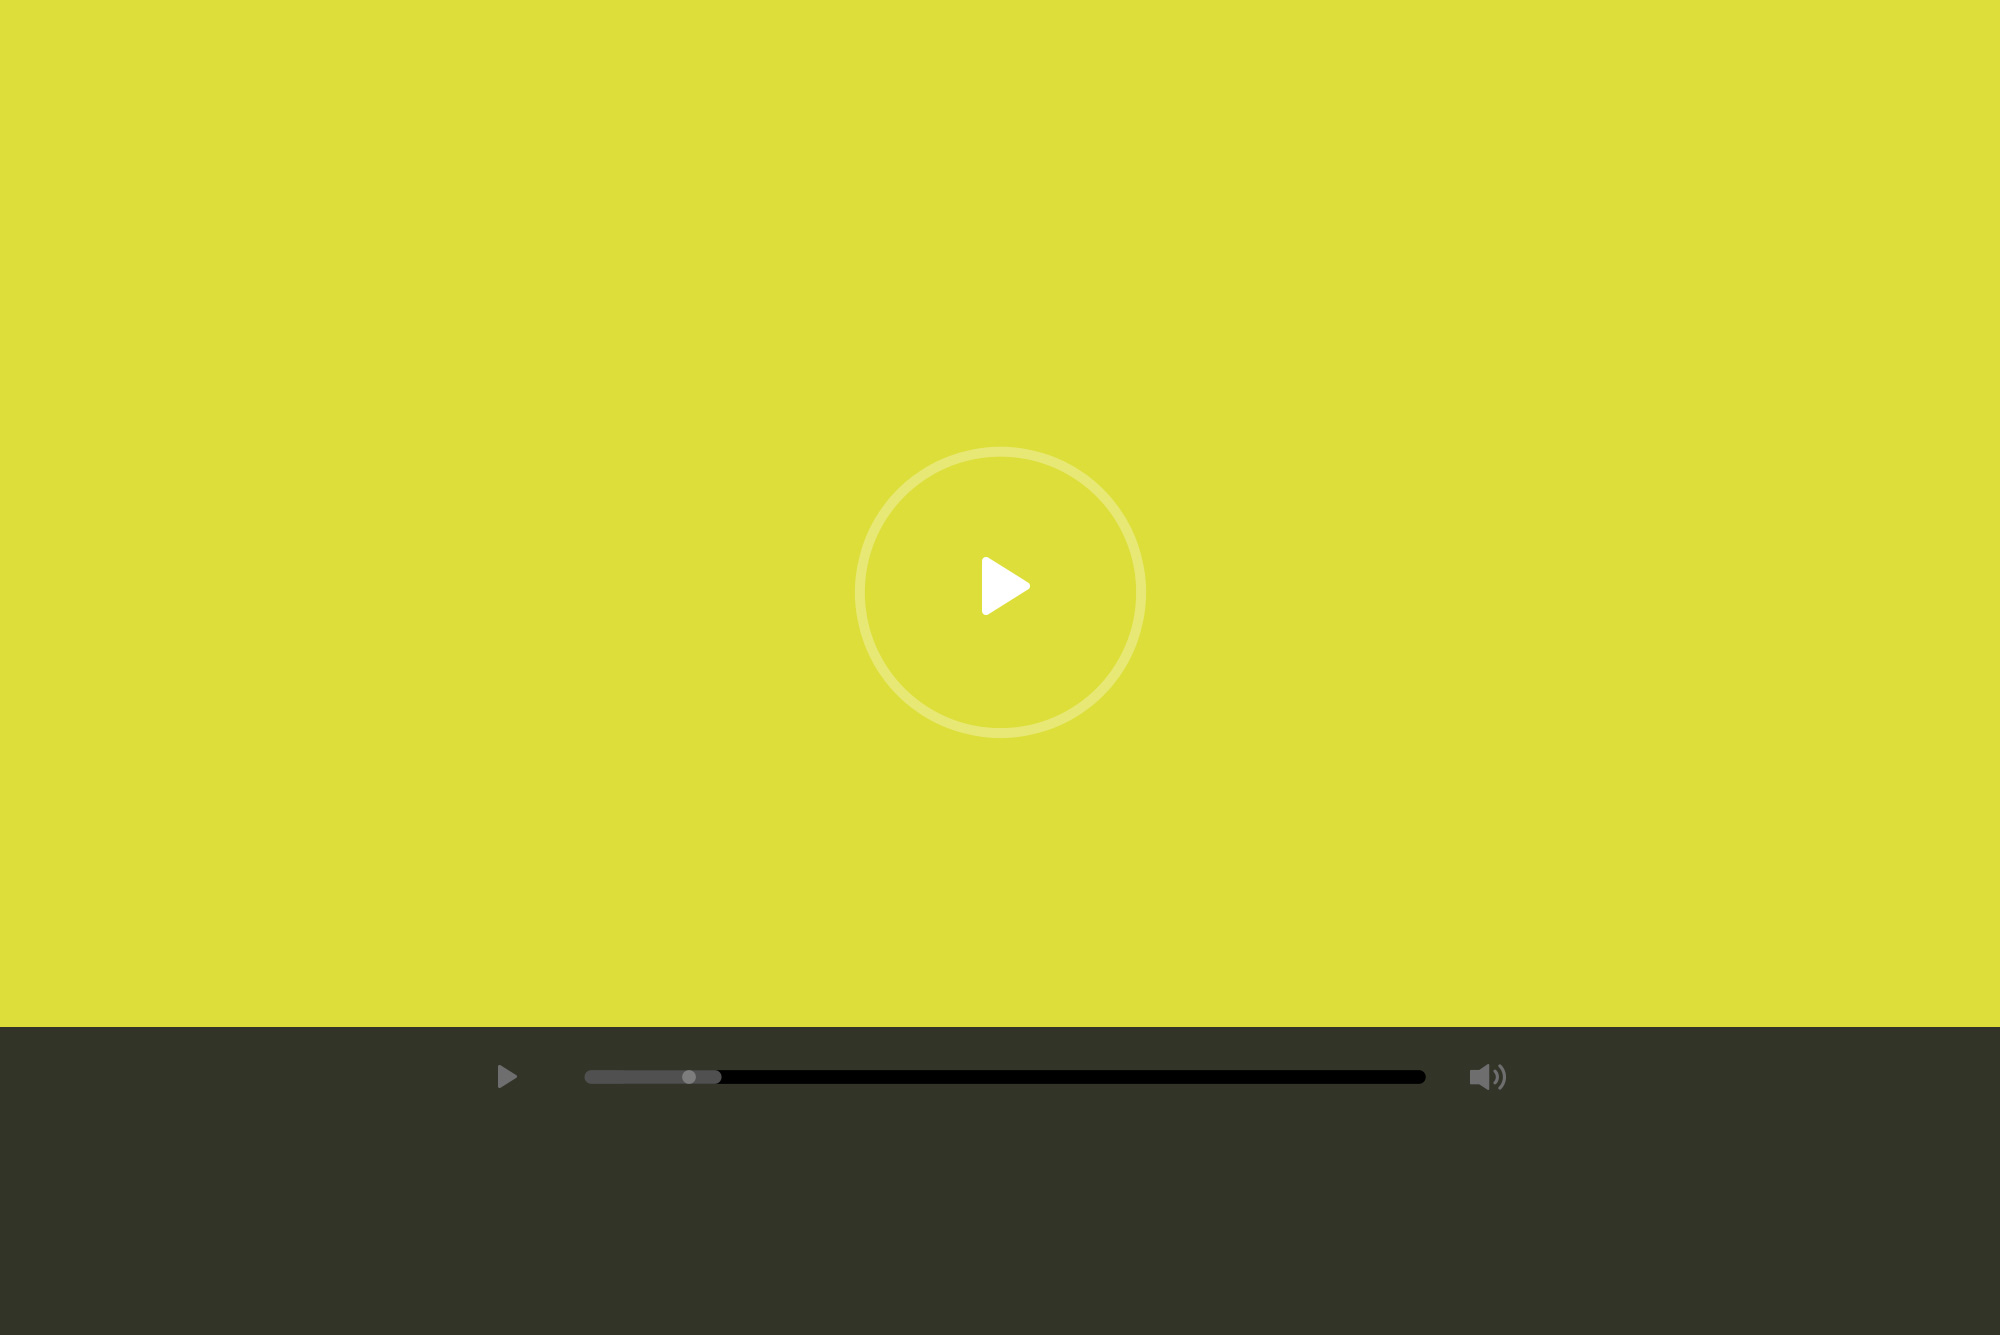 Video play button on yellow background - Video matters